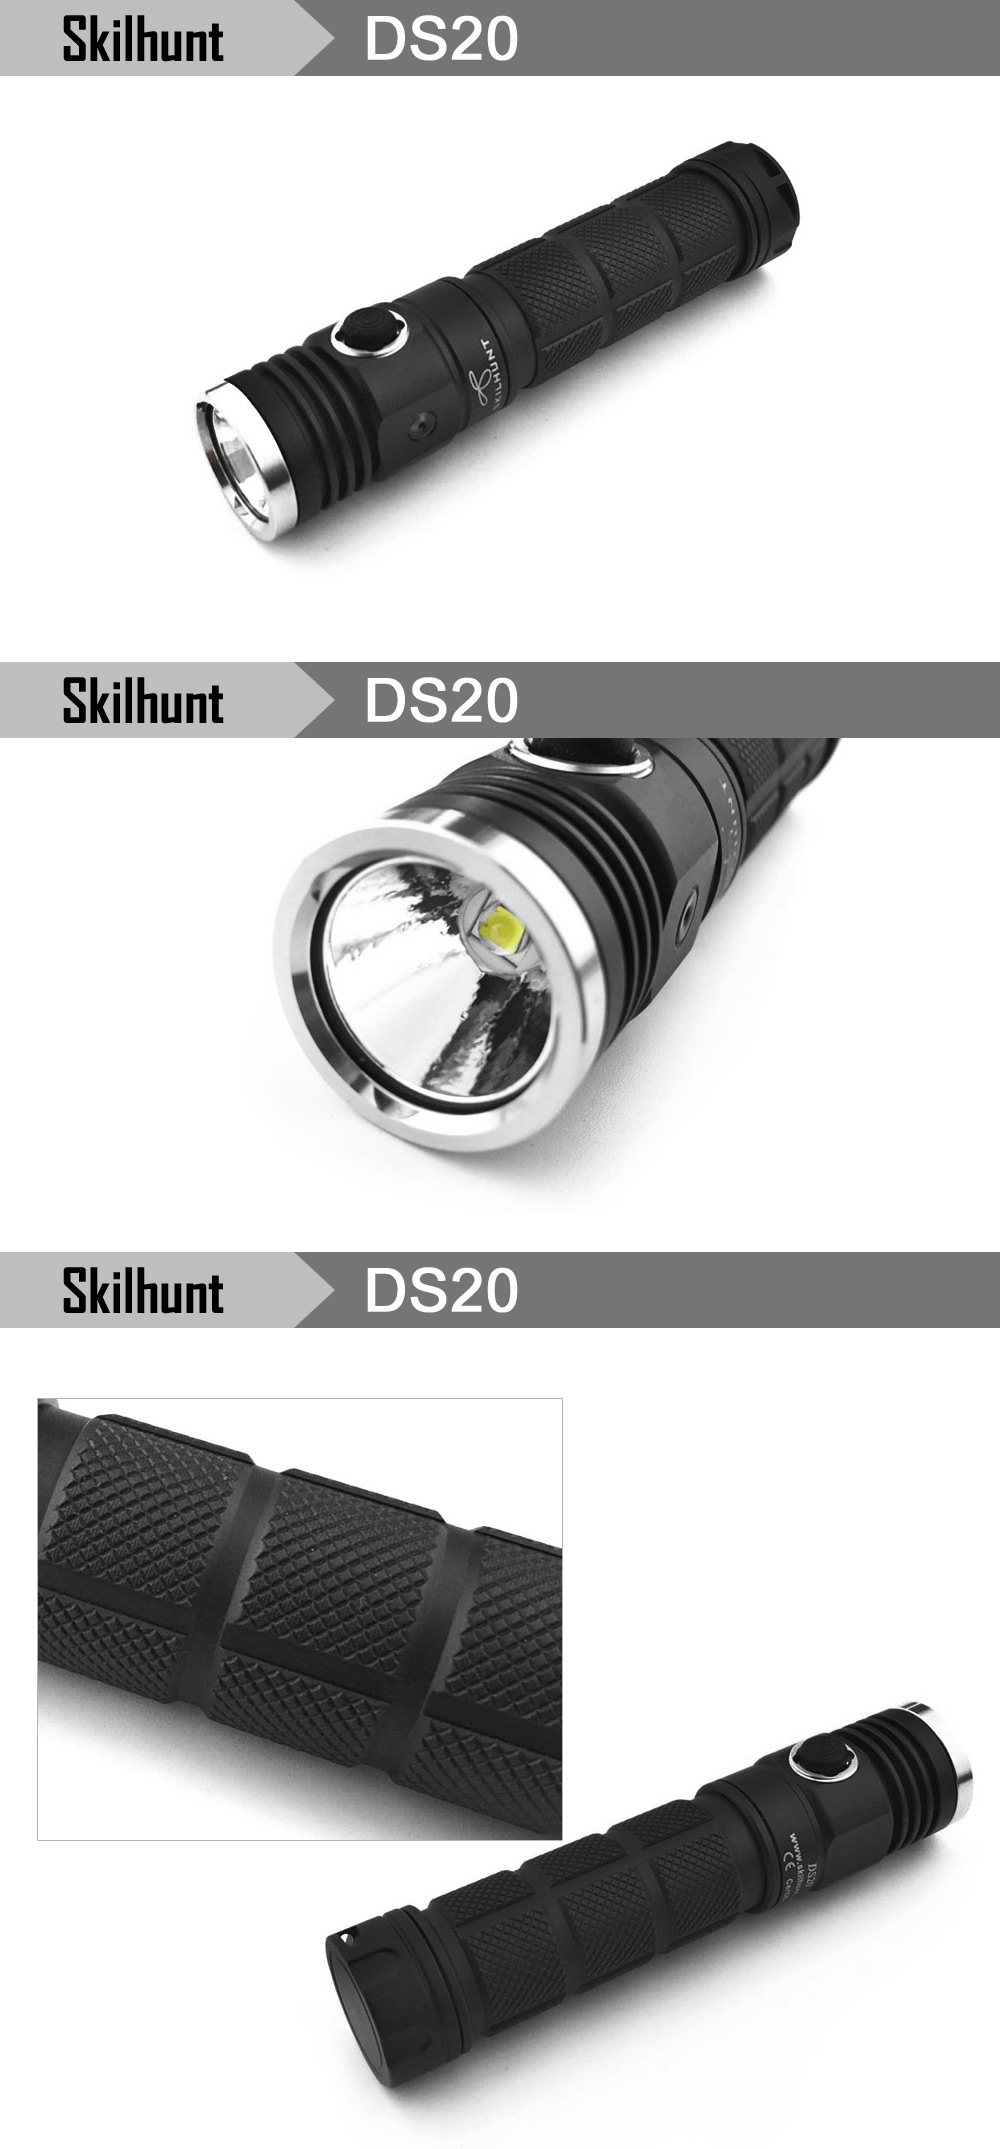 Skilhunt DS20 Cree XM L2 480LM 5 Modes Waterproof CR123A 18650 EDC LED Flashlight